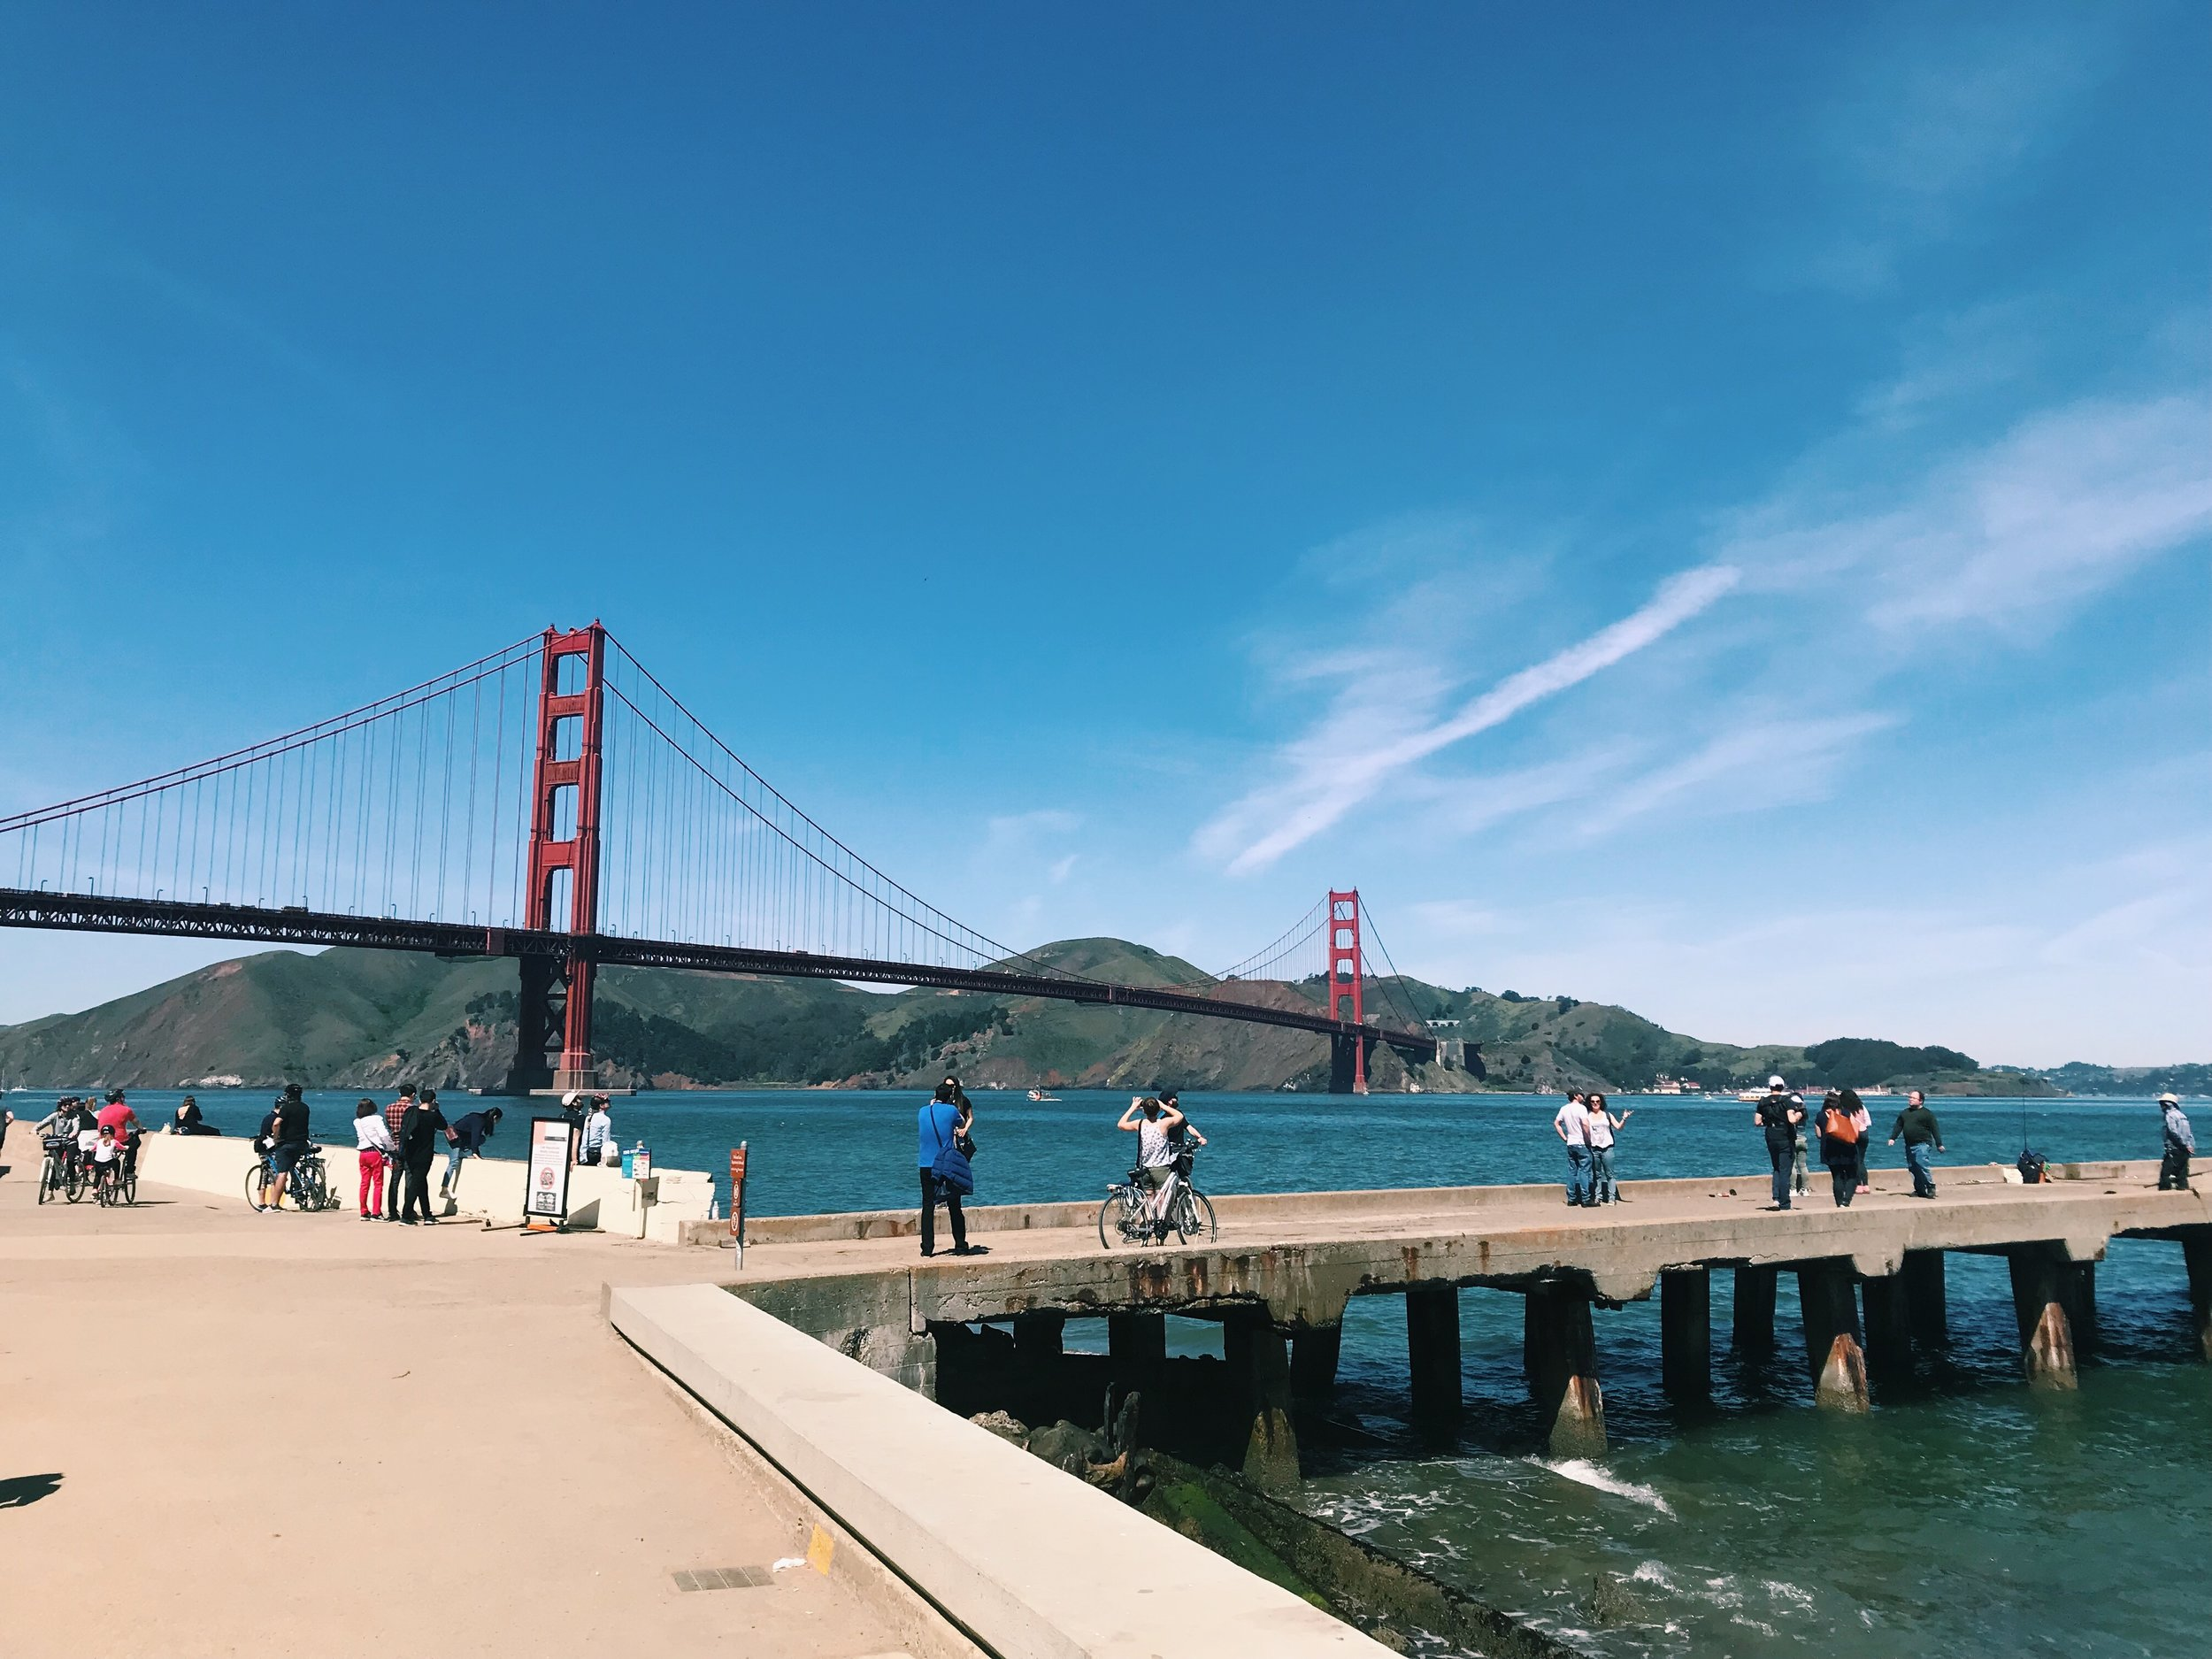 We actually biked on the bridge too, but I had to steal a shot before we got there.